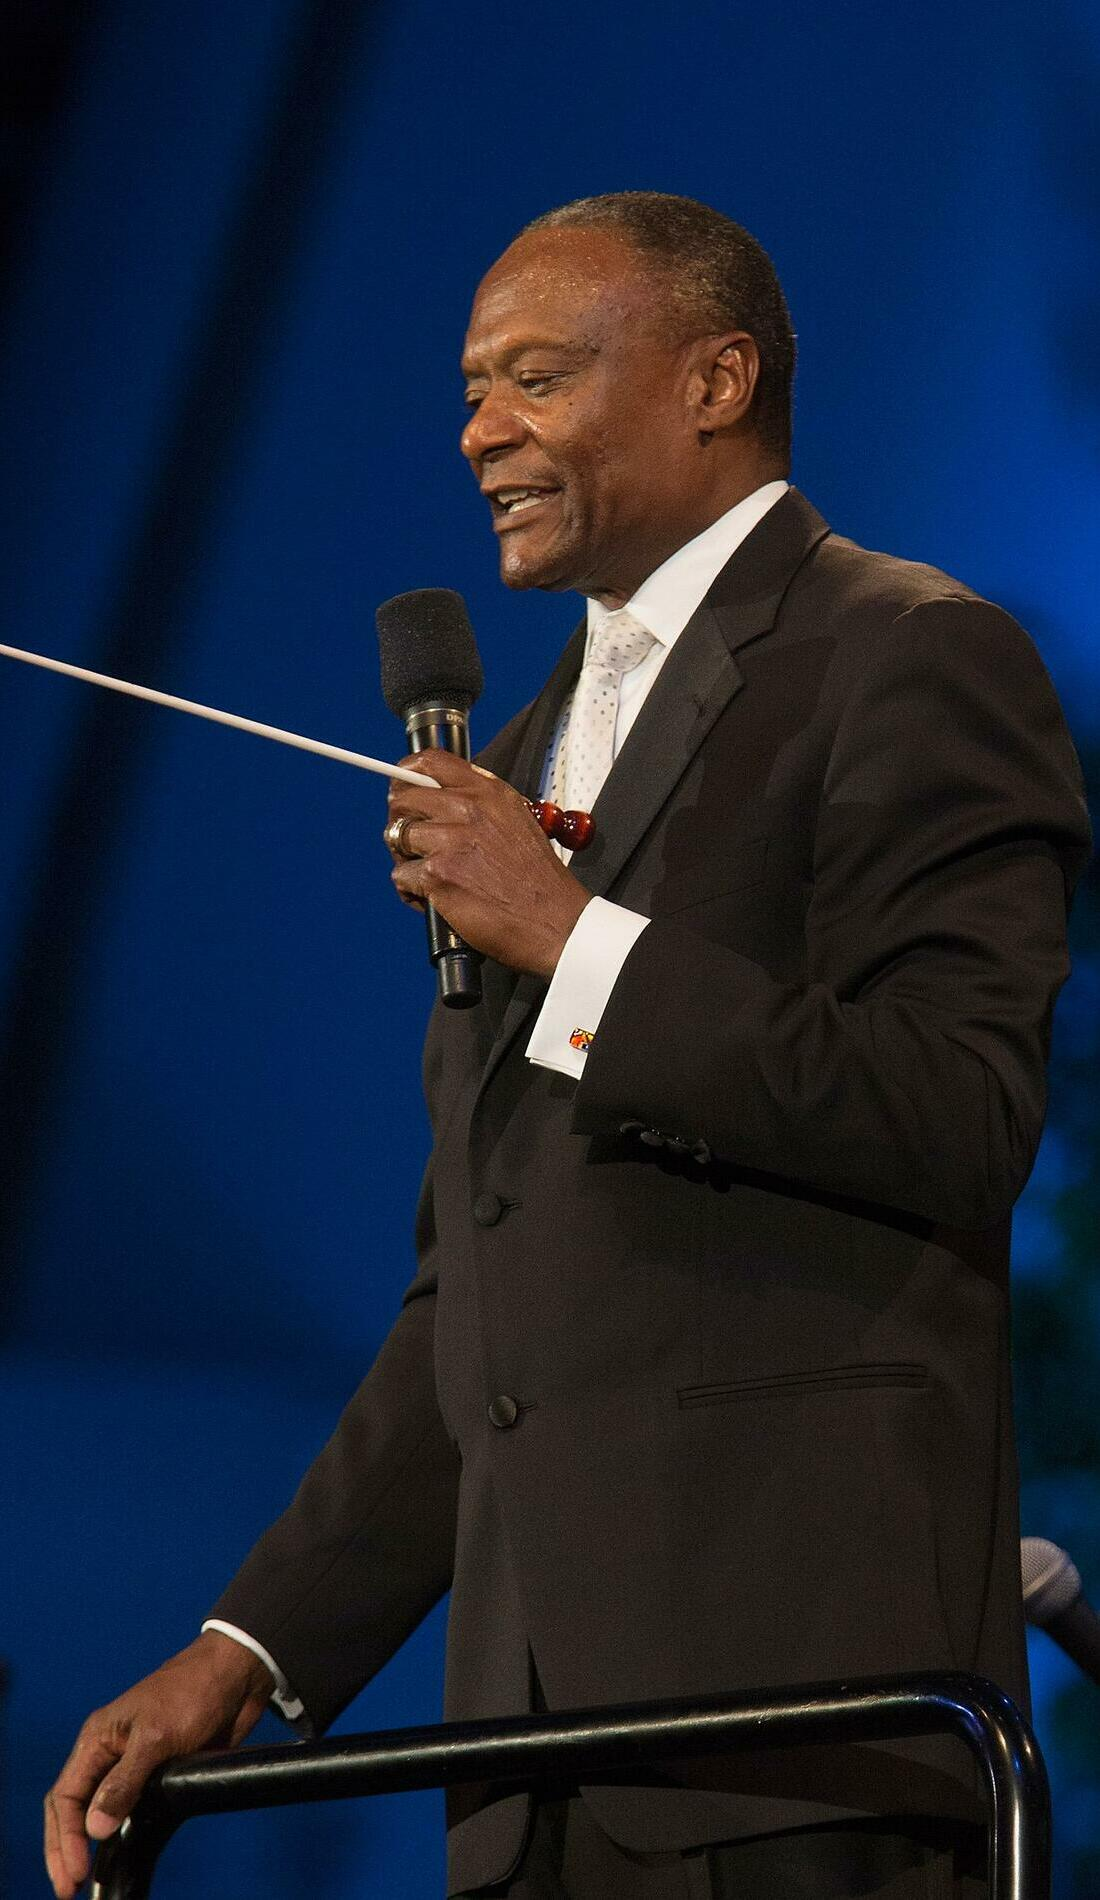 A Thomas Wilkins live event